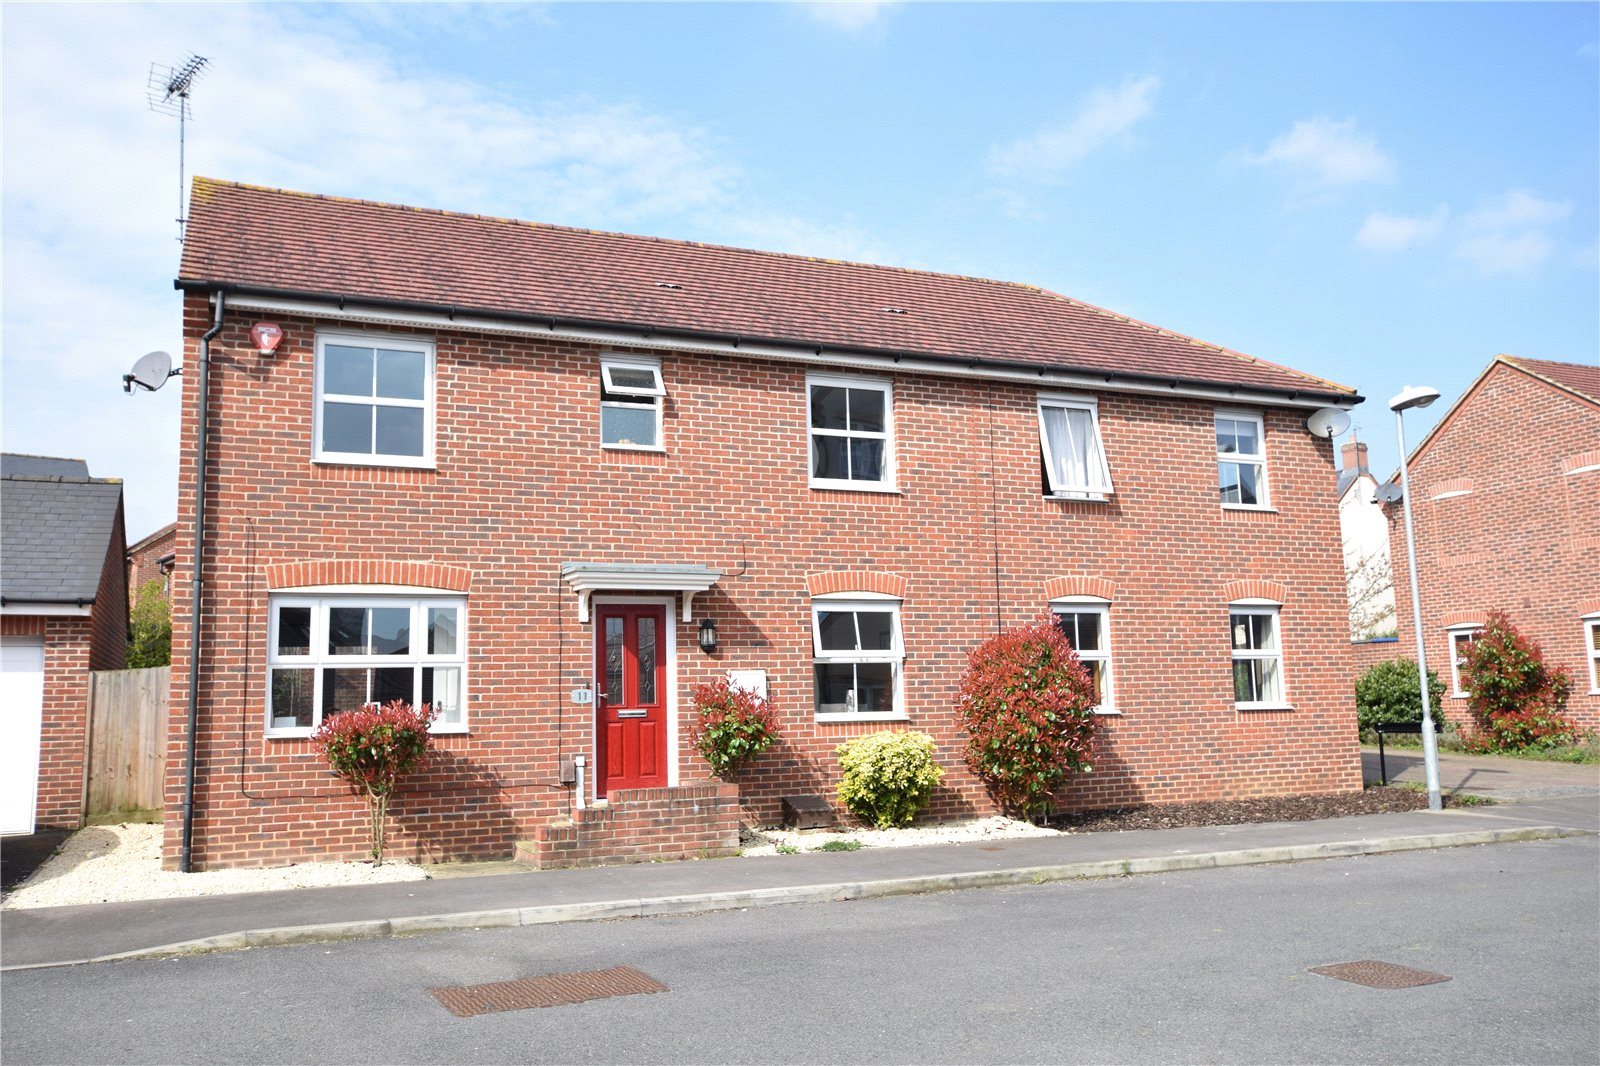 3 Bedrooms Semi Detached House for sale in Pigeon Grove, Bracknell, Berkshire, RG12